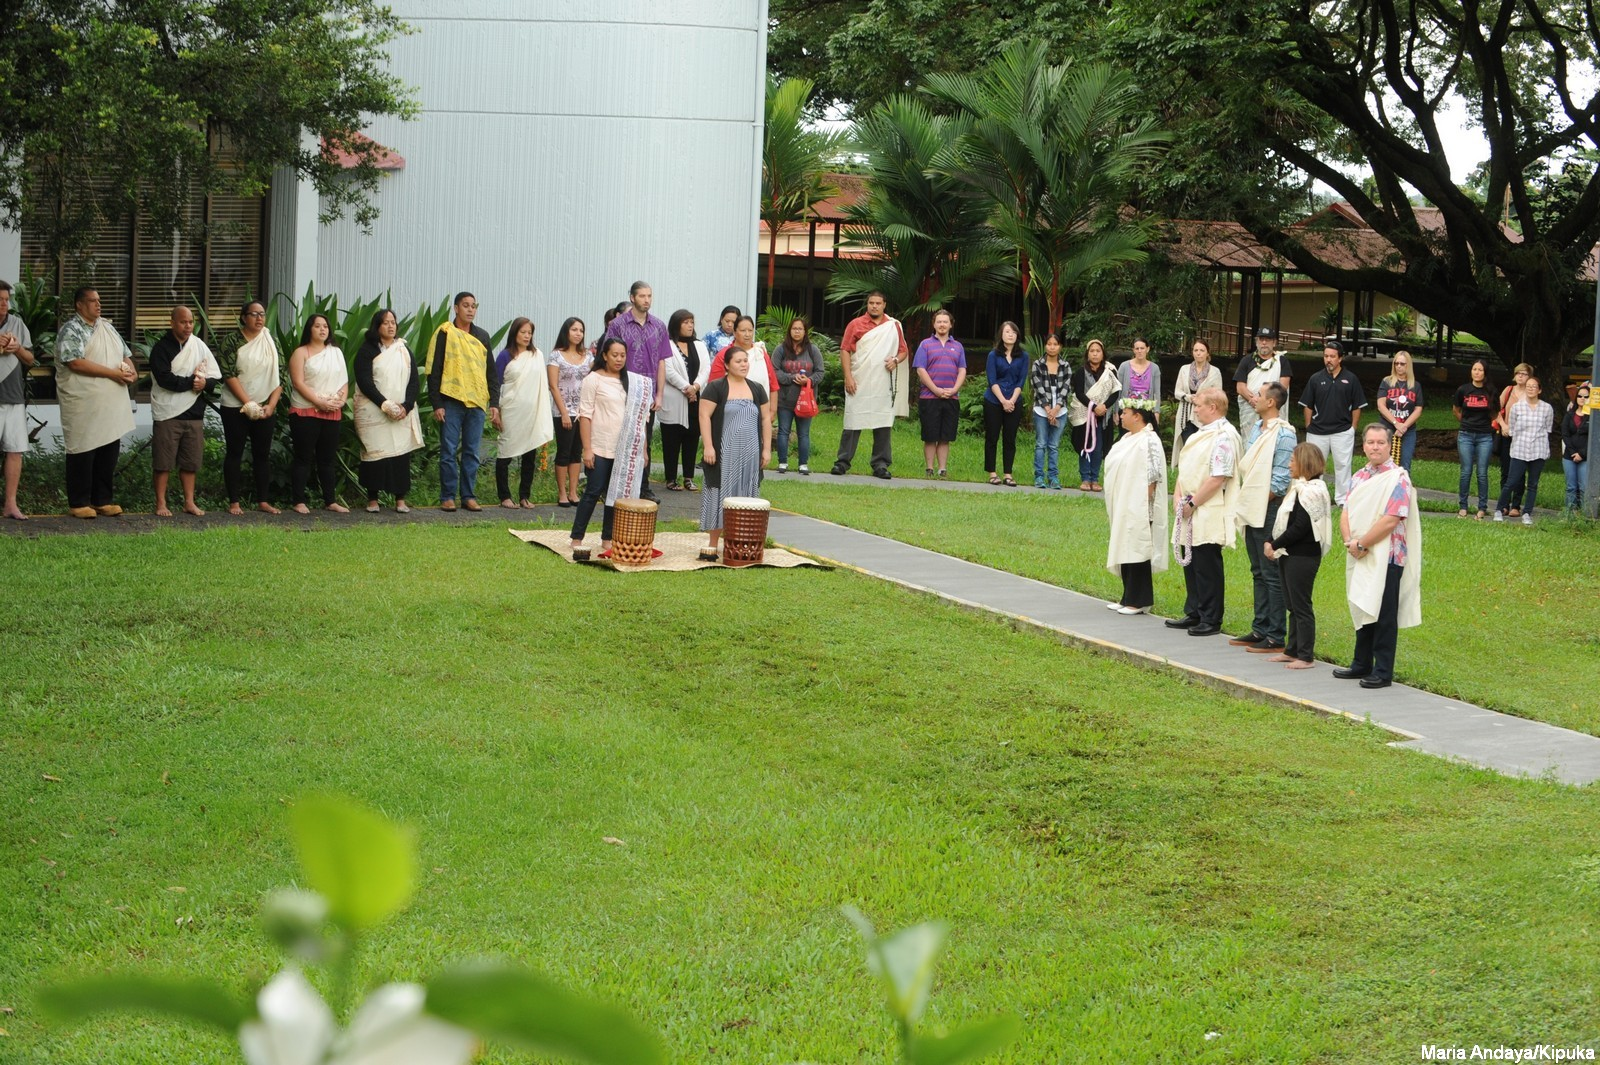 PHOTOS: Kīpaepae Welina Welcome Ceremony for new Vice Chancellor for Student Affairs Farrah-Marie Gomes